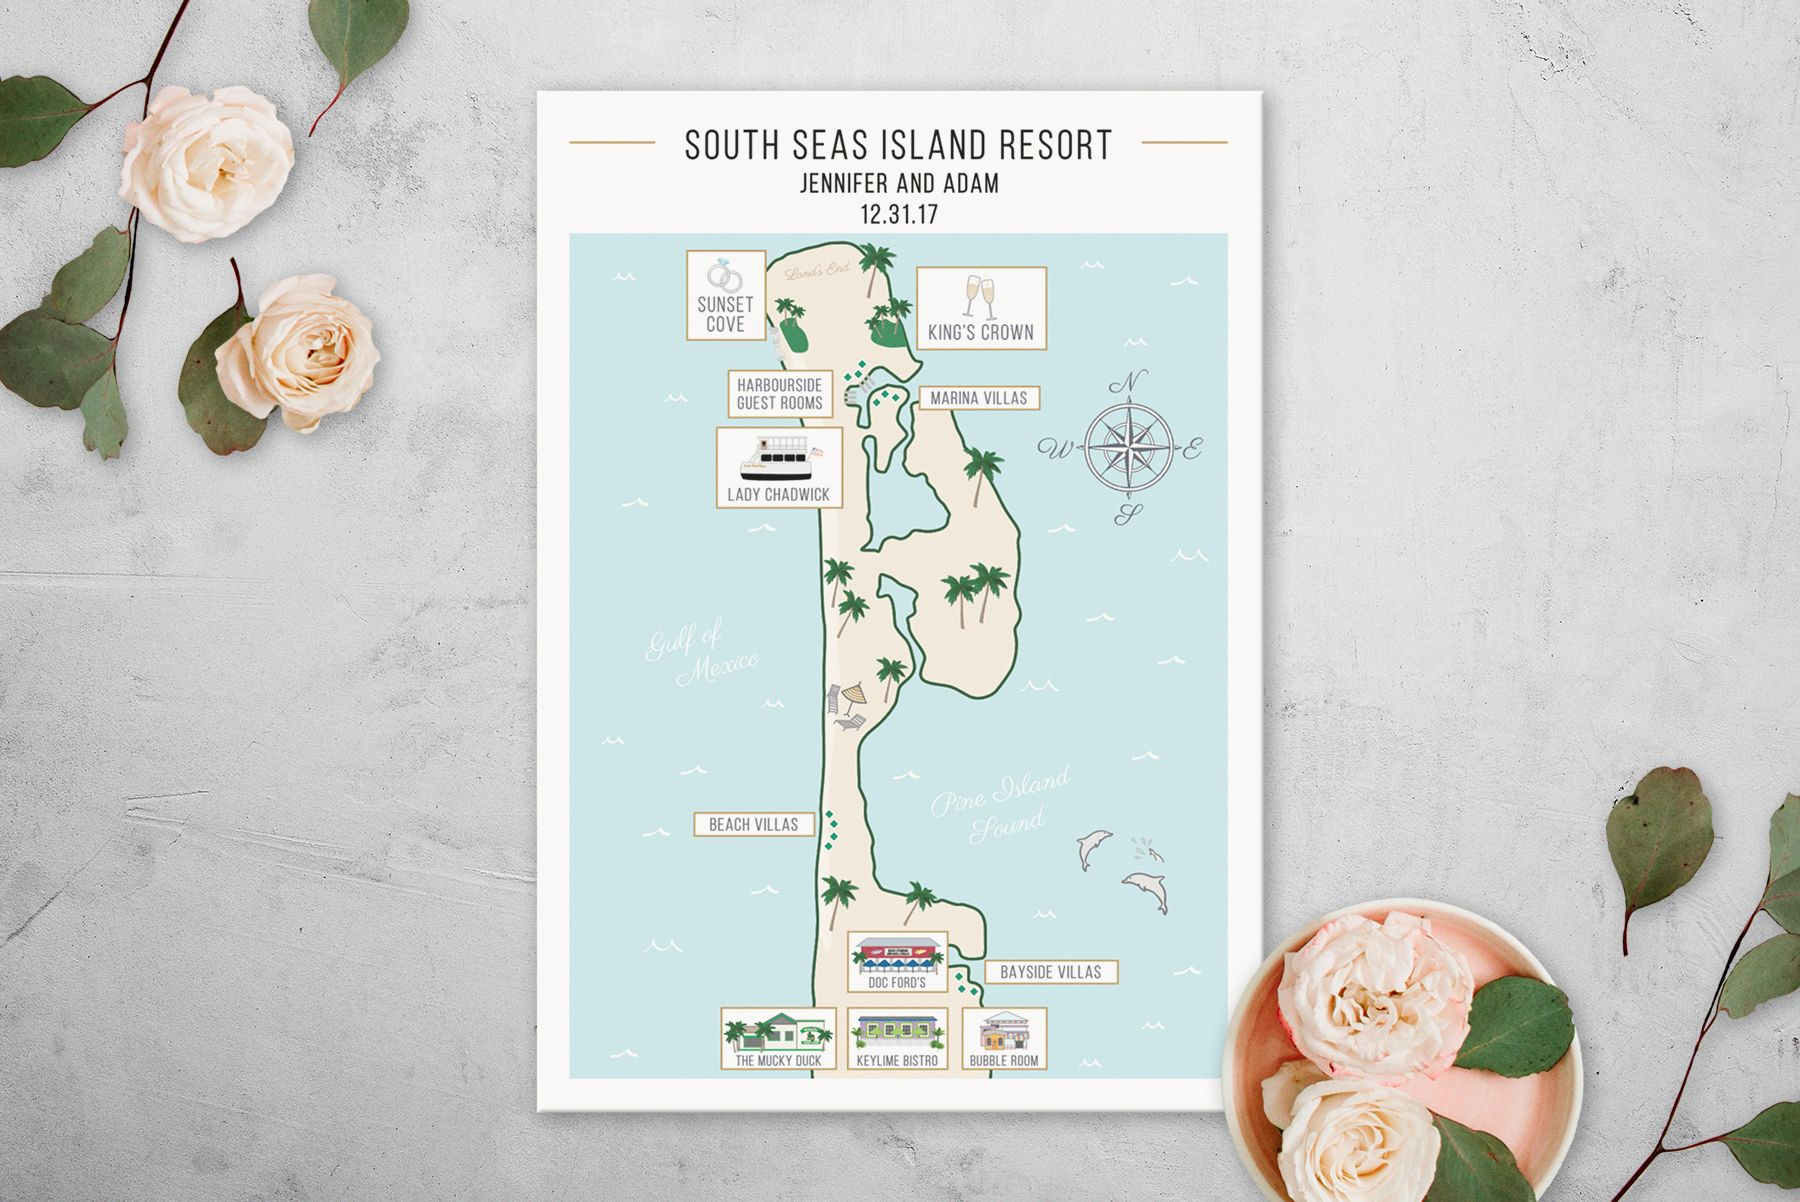 Custom Captiva Island, Florida Wedding Map • South Seas ... on coastal georgia beaches map, sea island brochure, freeport bahamas map, sea island beach, sea island home, sea island weather, sea island restaurants, sea shell island florida, sea island spa, sea beach map, castaway island map, jekyll island club hotel map, sea island tennis, sea island georgia, sea island golf, sea island history, sea island cottages, sea island transportation, south carolina barrier islands map, sea island weddings,